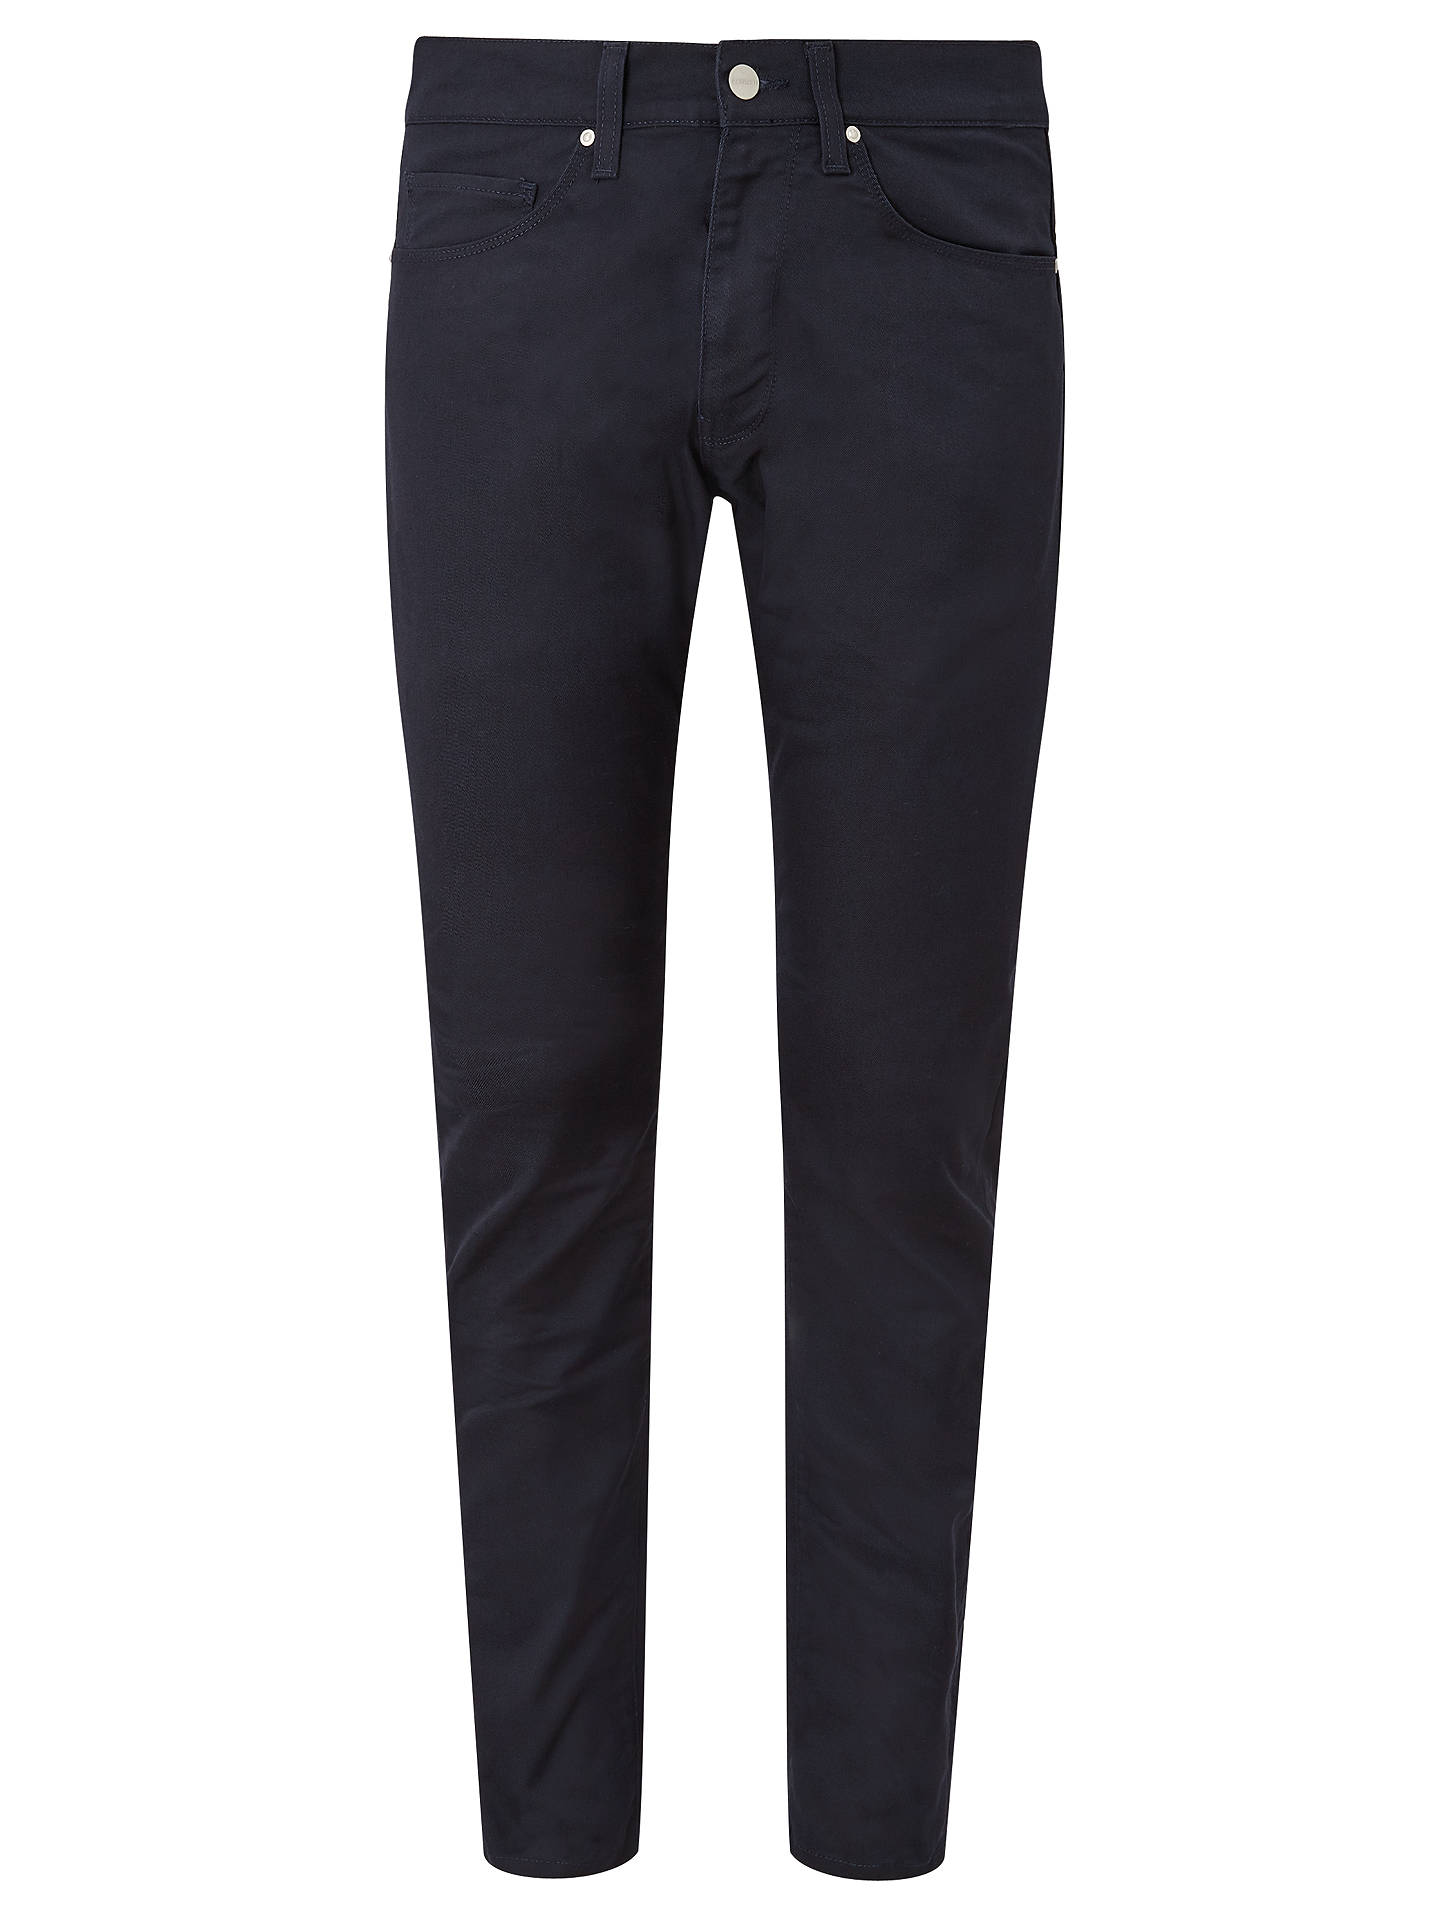 BuyCarhartt WIP Vicious Trousers, Dark Navy, 30R Online at johnlewis.com